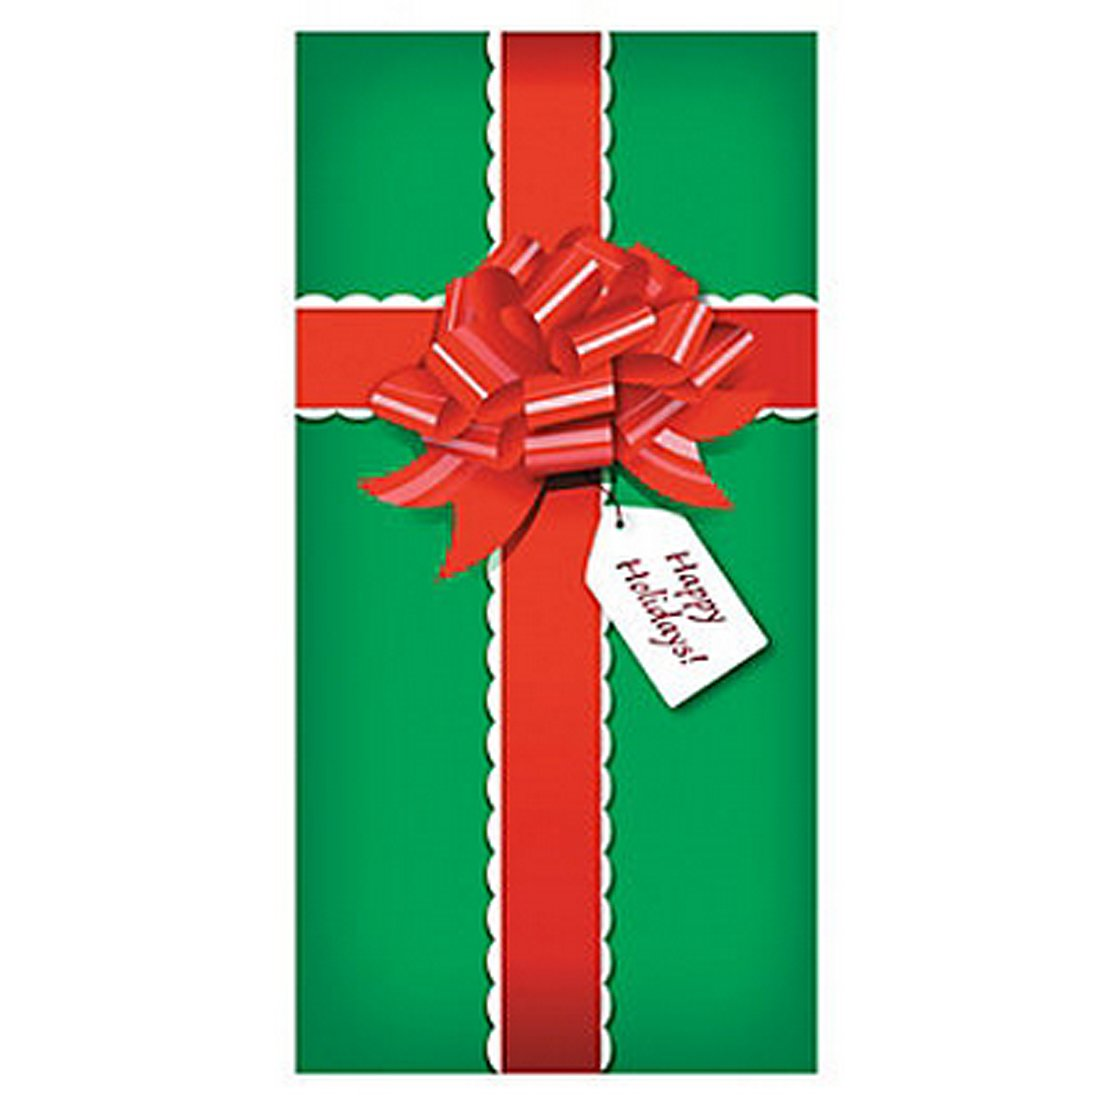 Decorating red door gifts photos : Amazon.com: CHRISTMAS PRESENT/Gift DOOR BANNER Holiday DECORATION ...